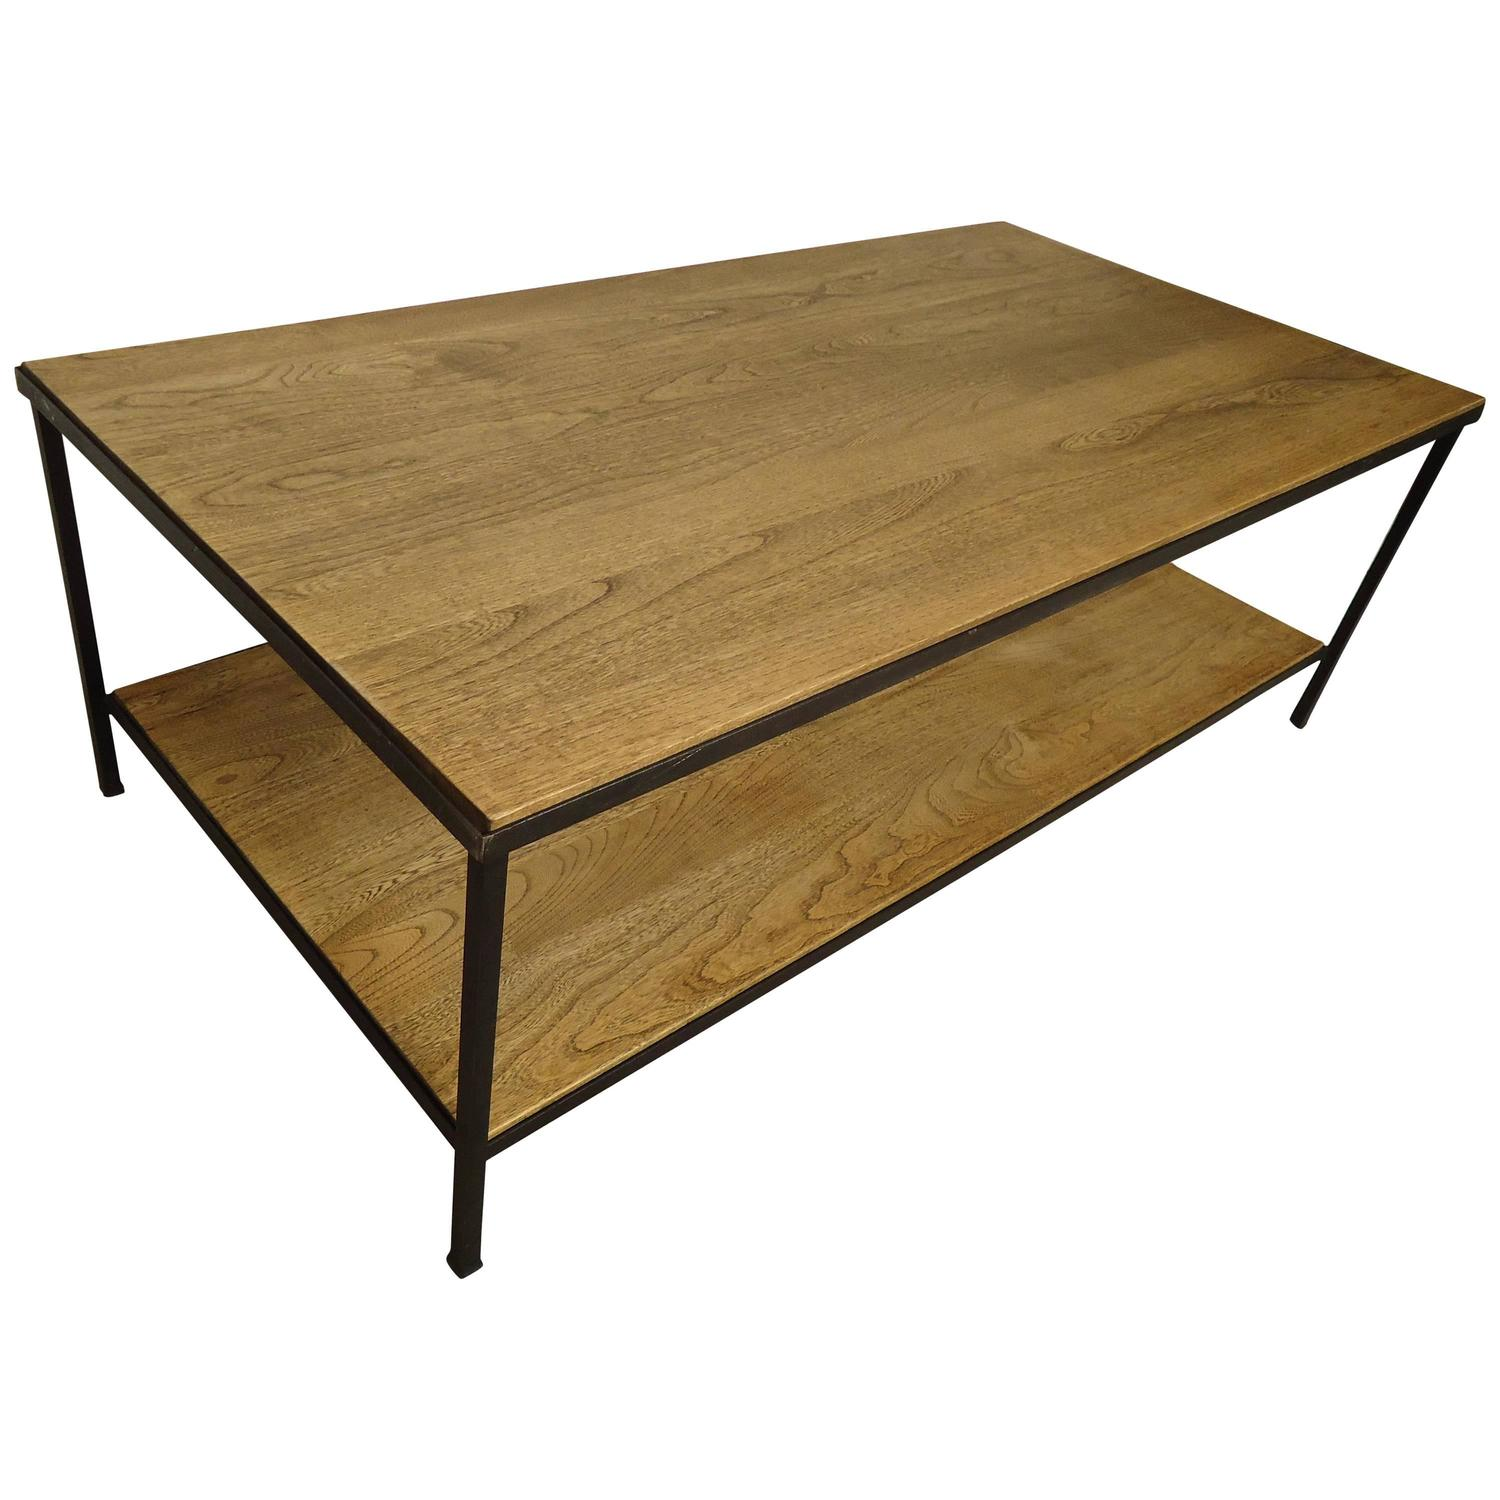 Solid Industrial Style Two Tier Coffee Table For Sale At 1stdibs